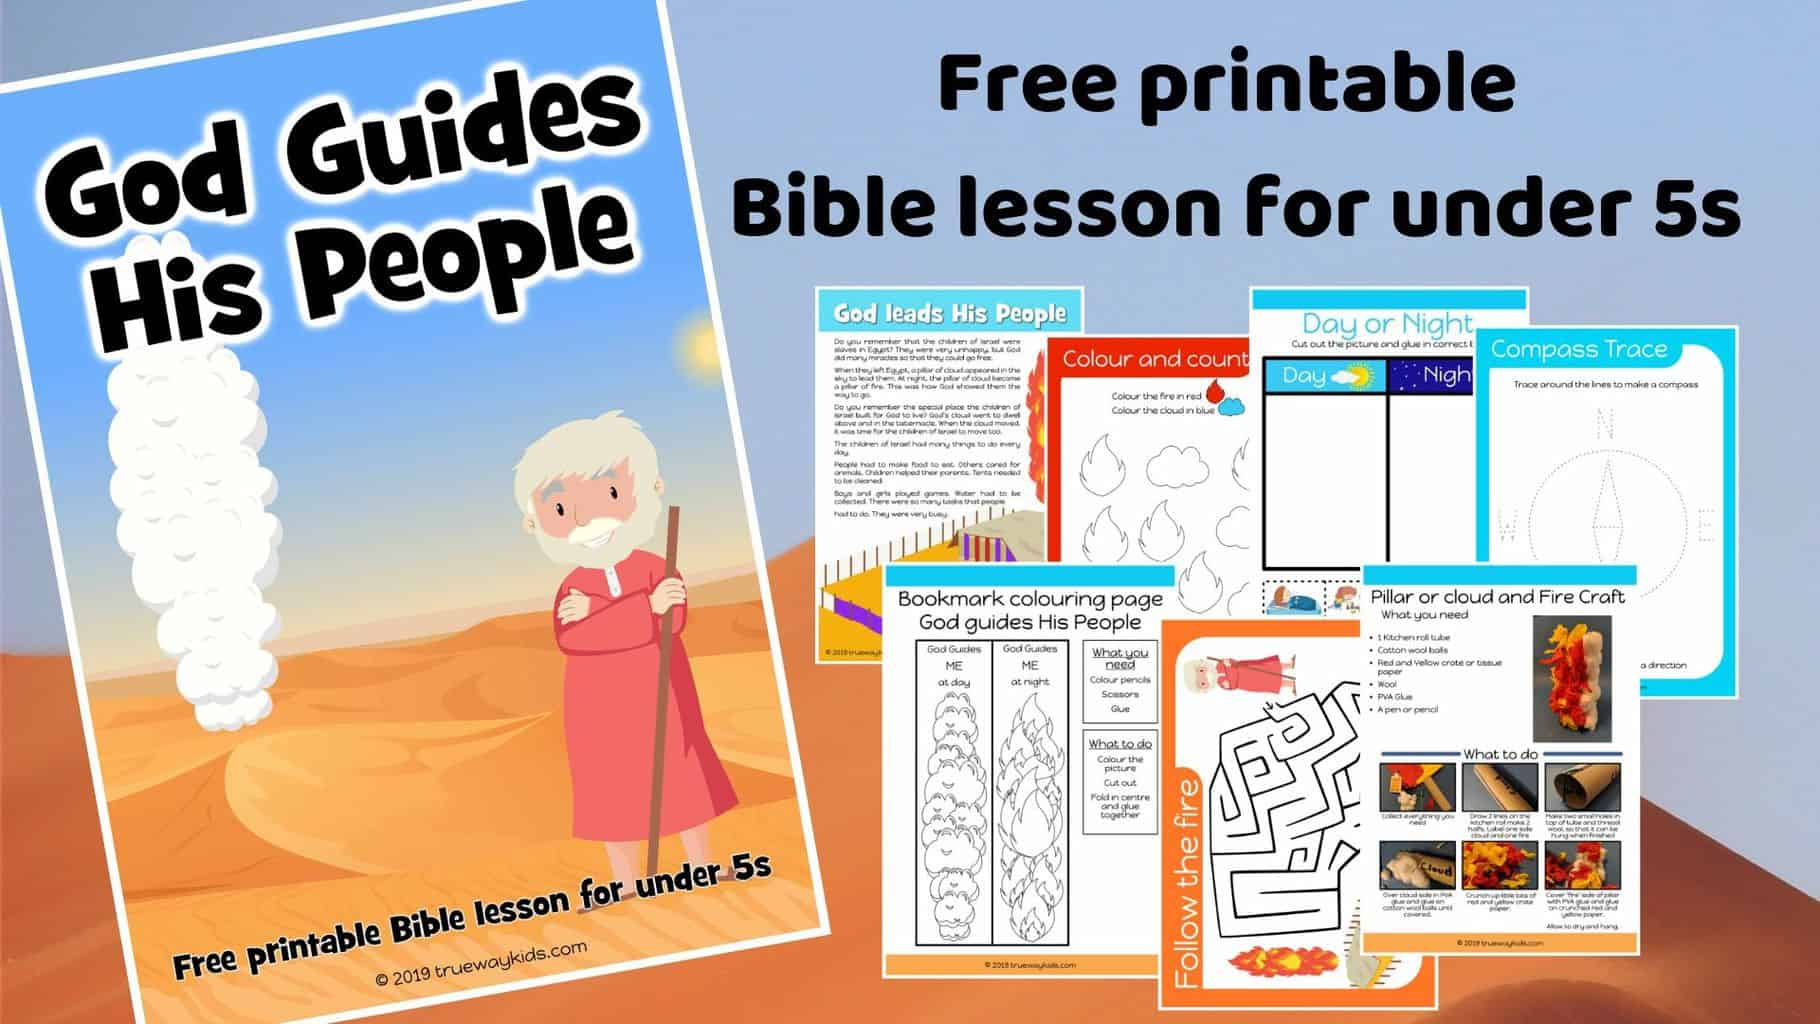 photograph about Bible Lessons for Adults Free Printable named God publications His Those - Absolutely free printable preschool Bible